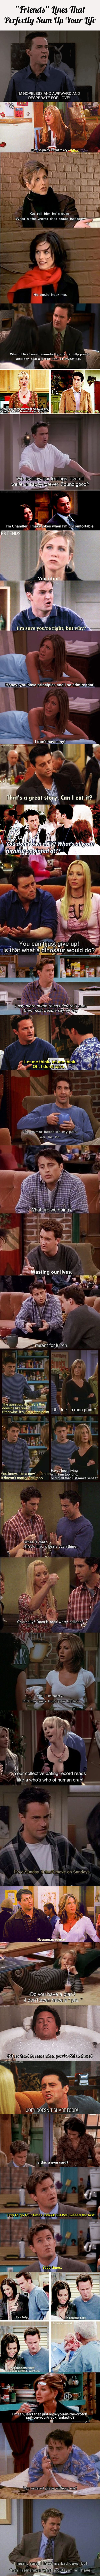 Friends Lines That Perfectly Sum Up Your Life